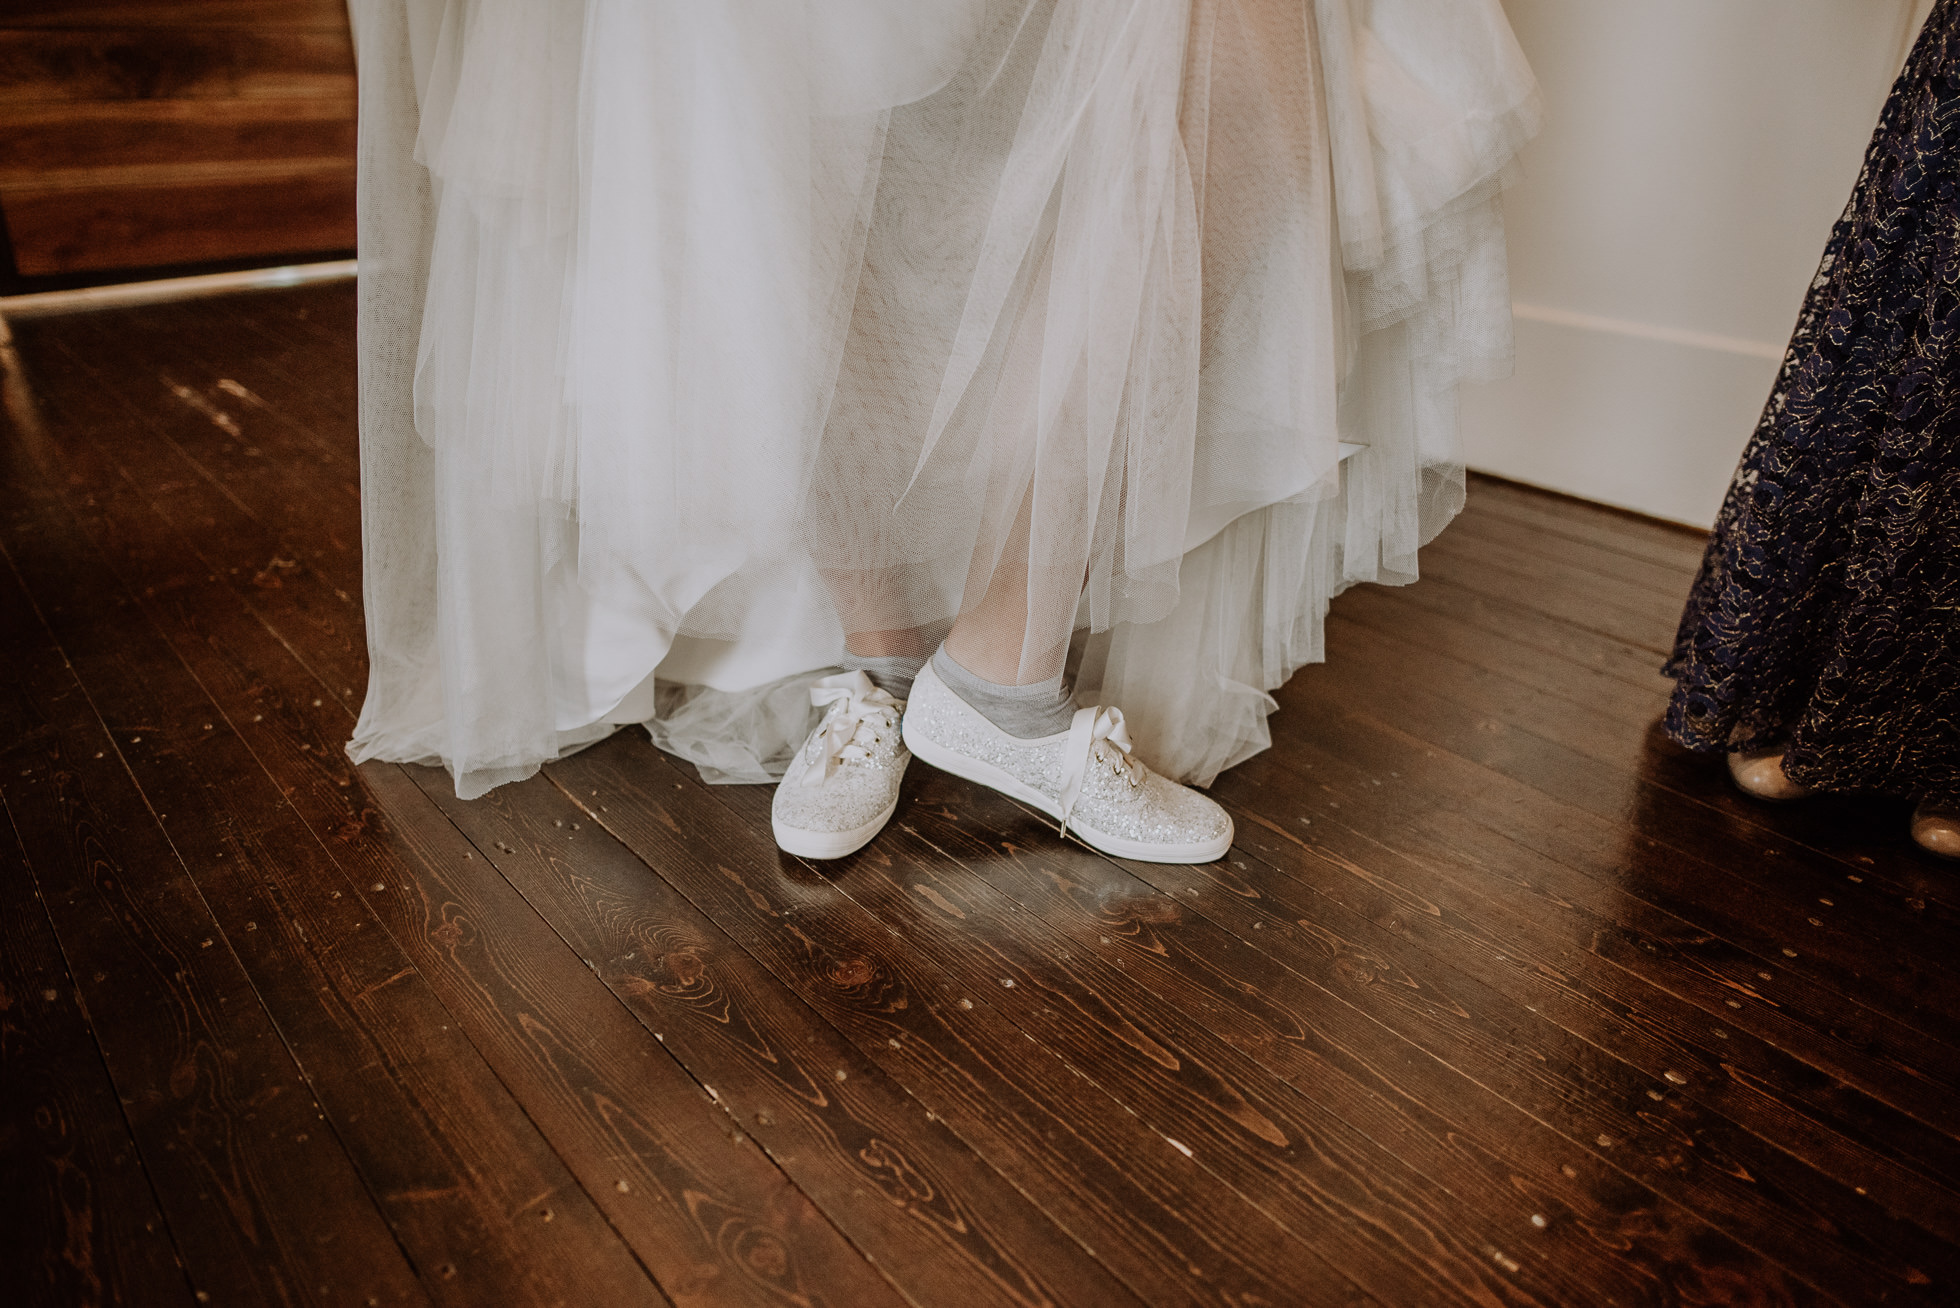 keds bride shoes the cordelle nashville wedding